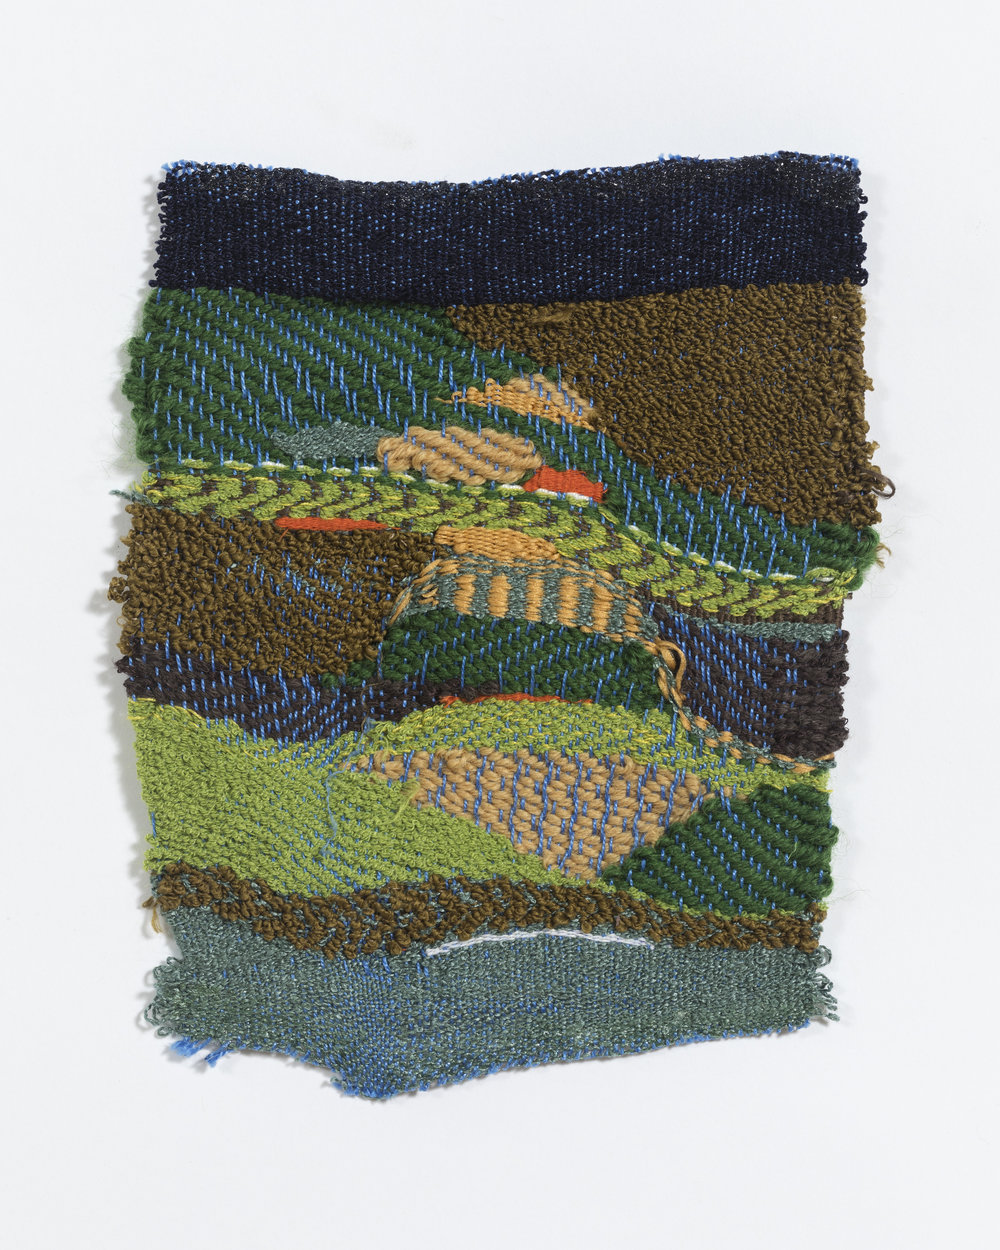 """woven on 8-harness floor loom, approximately 8 x 10"""", found yarns"""